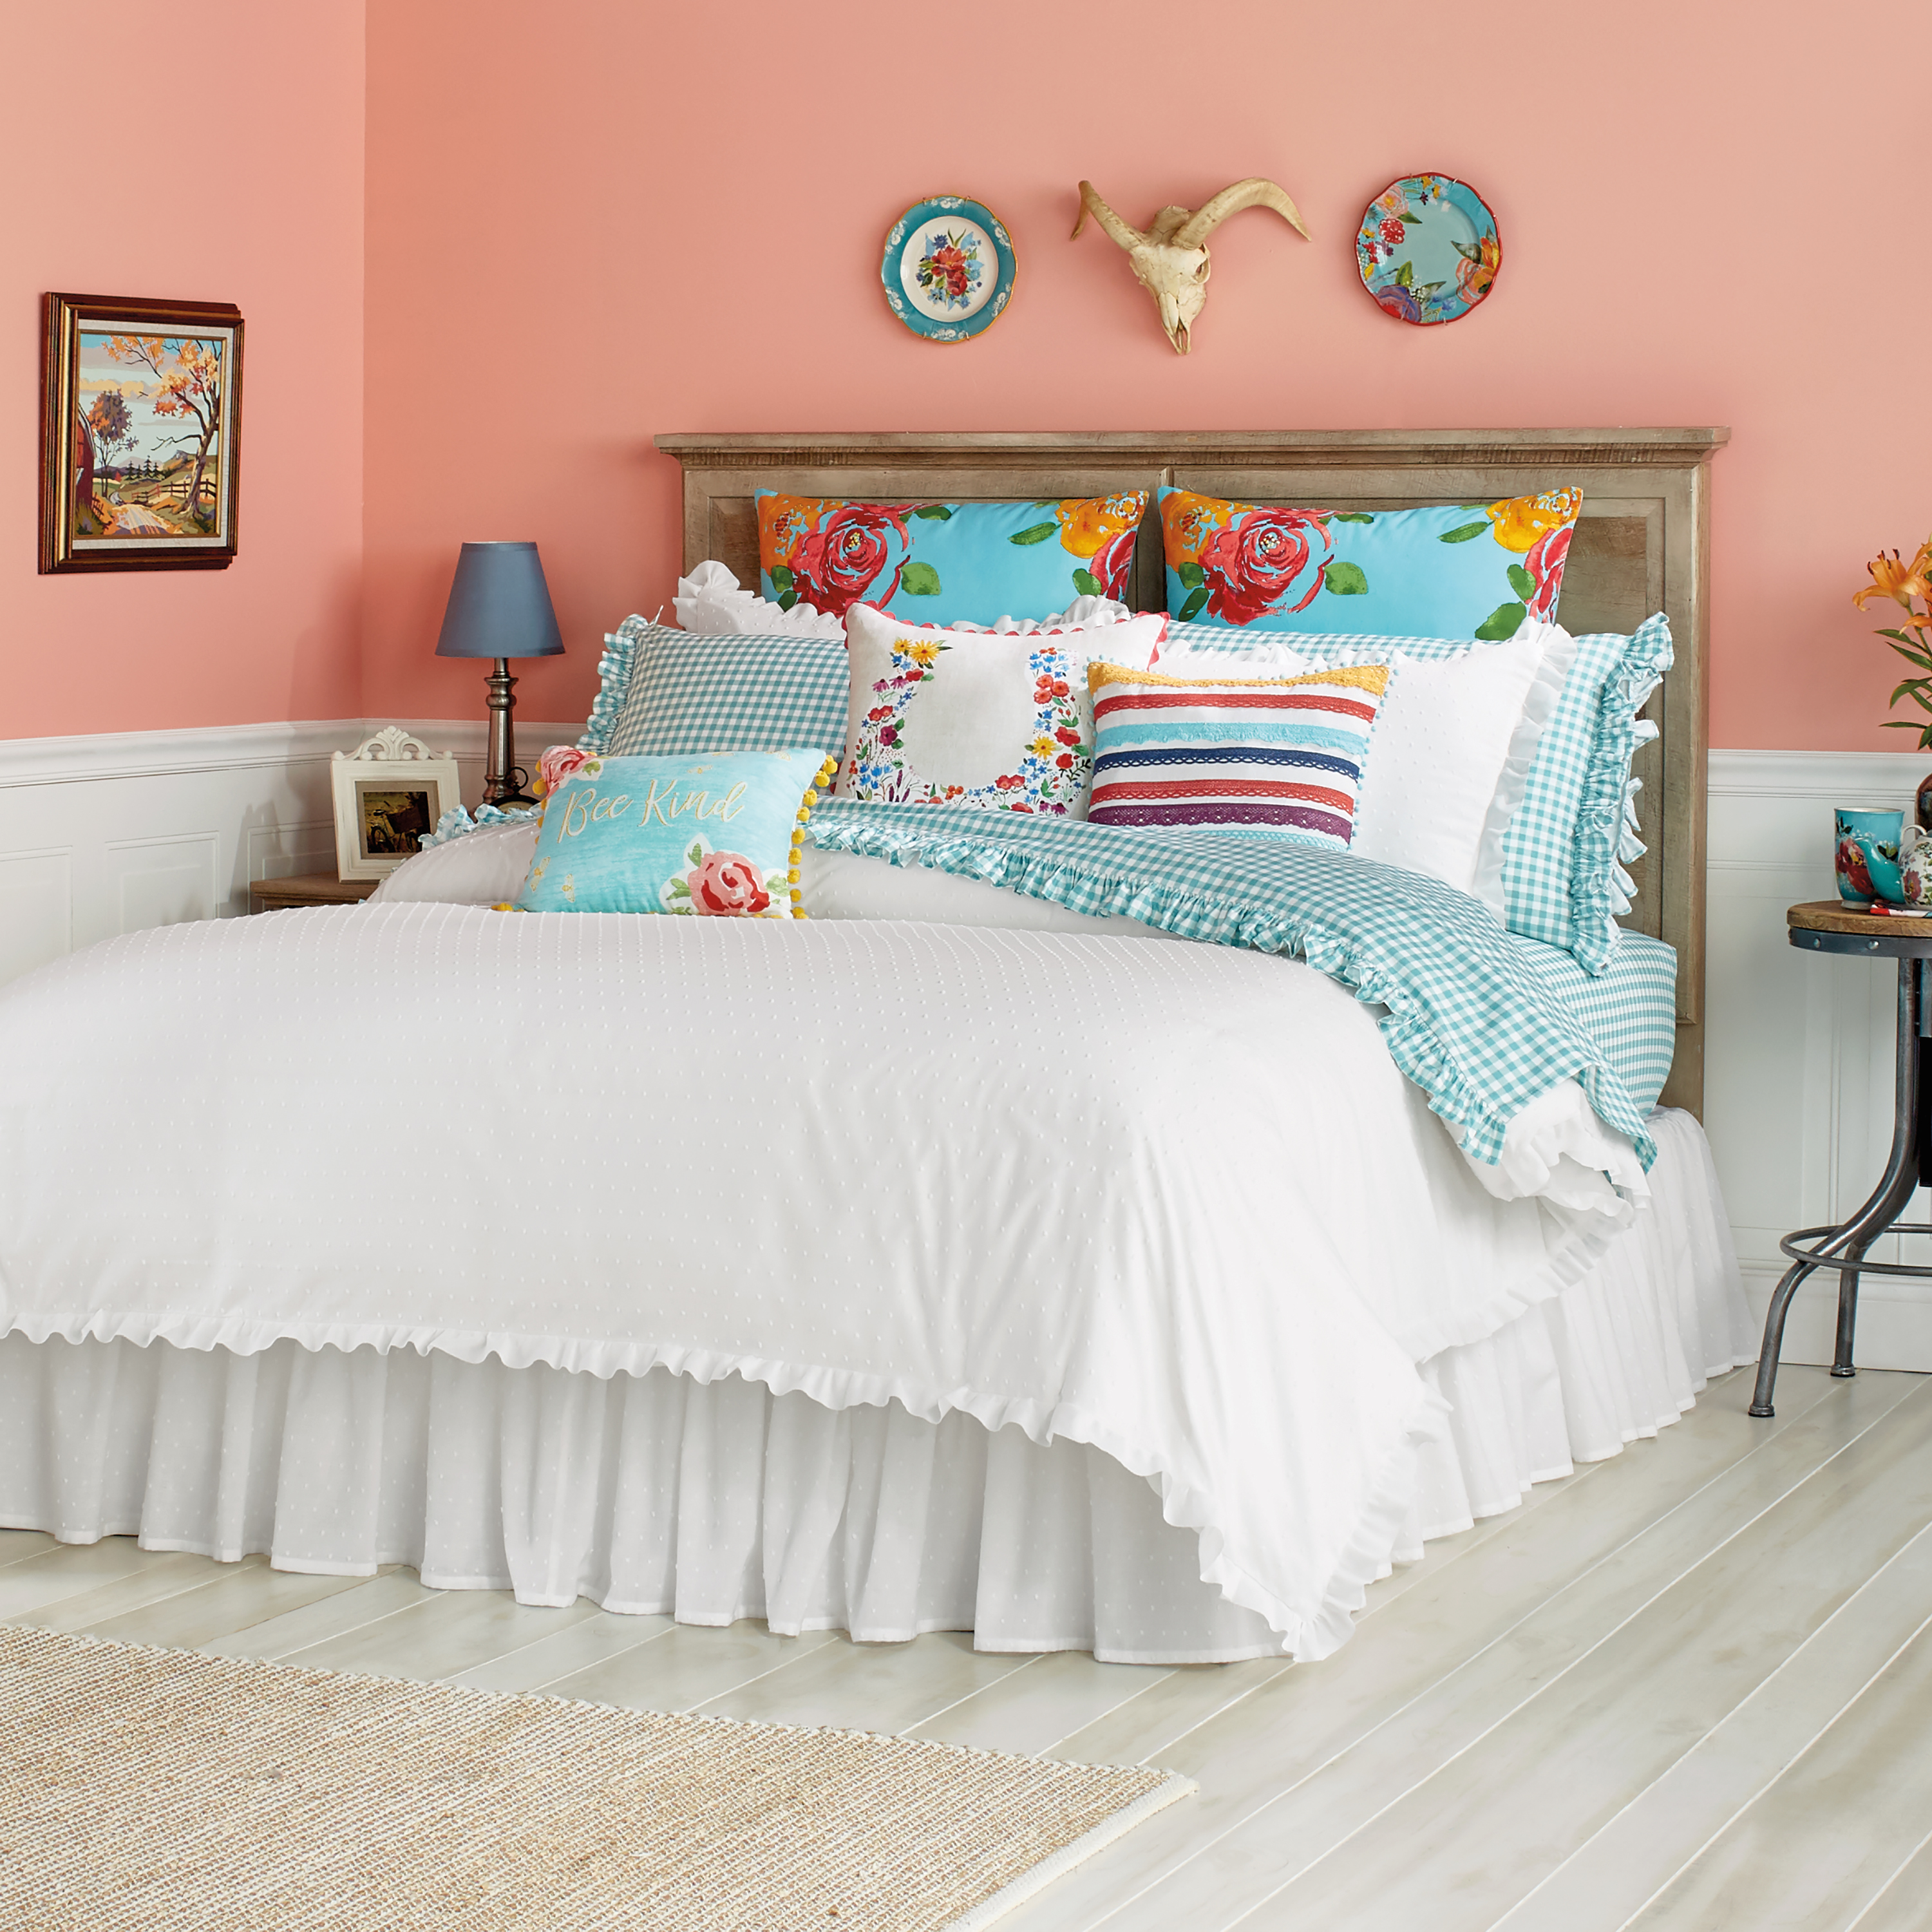 The Pioneer Woman Breezy Dot Comforter and Sham Set